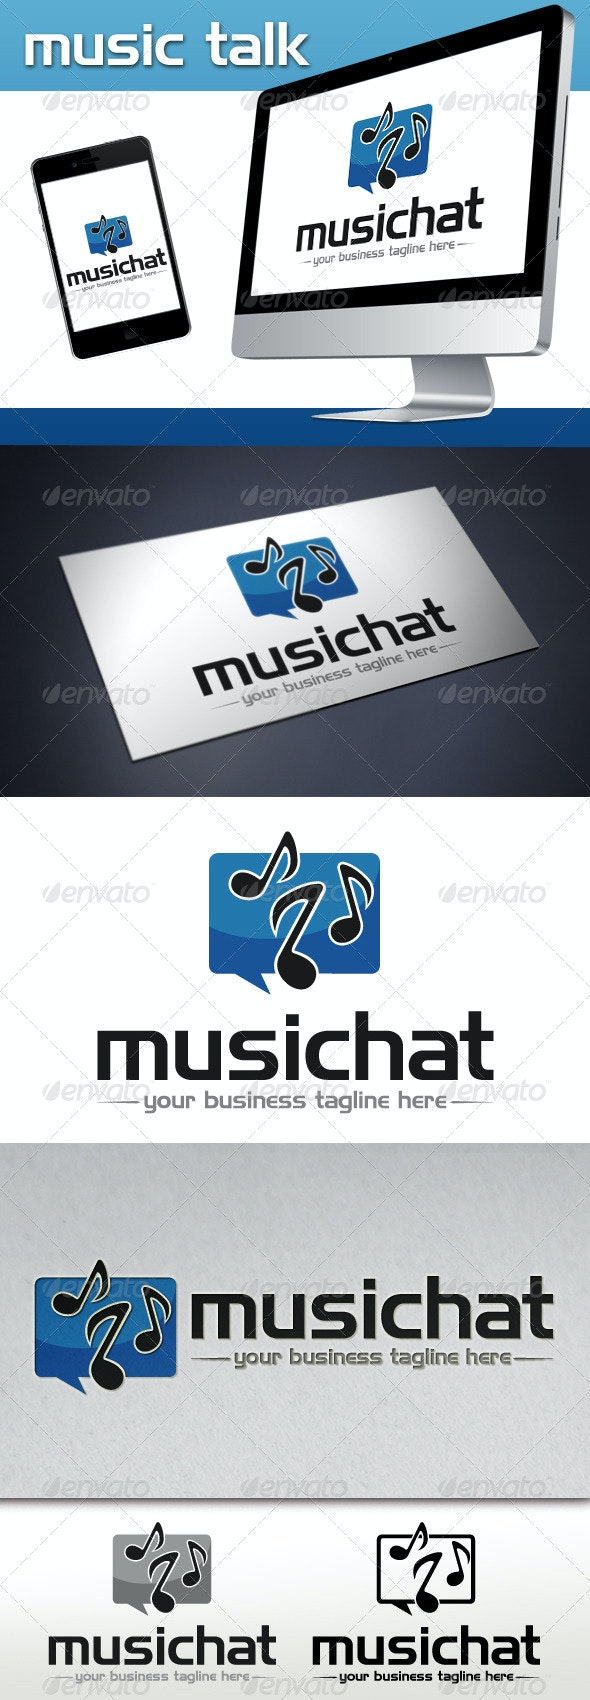 Music Talk Logo Template - Vector Abstract